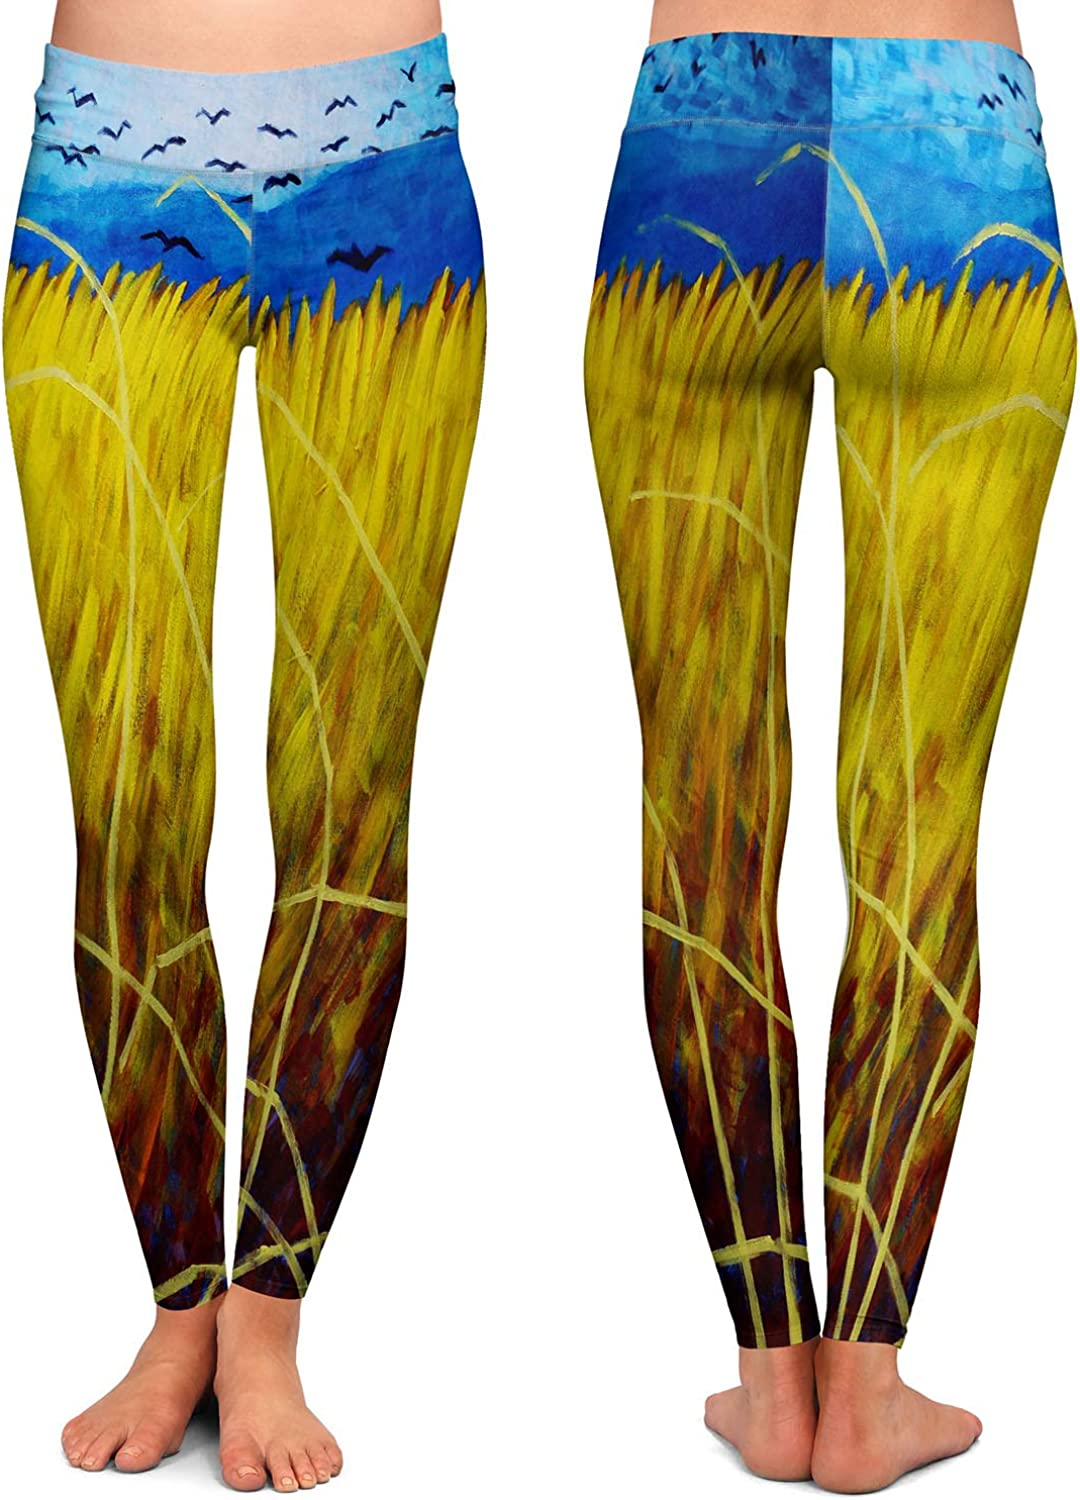 Athletic Yoga Leggings from DiaNoche Designs by John Nolan Vincent